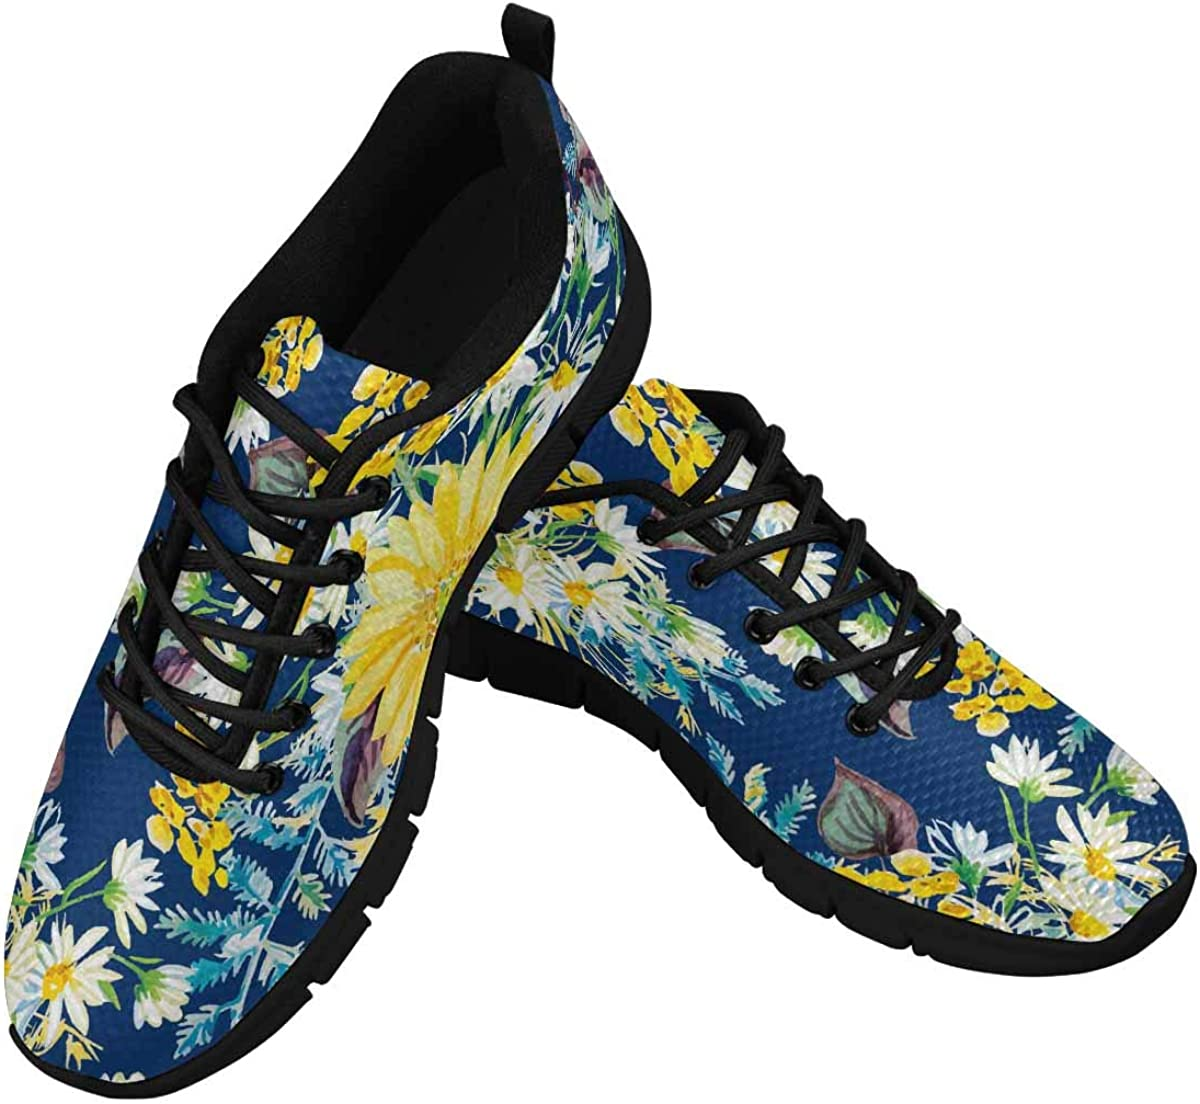 INTERESTPRINT Summer Yellow and White Daisies Women's Breathable Non Slip Sneakers